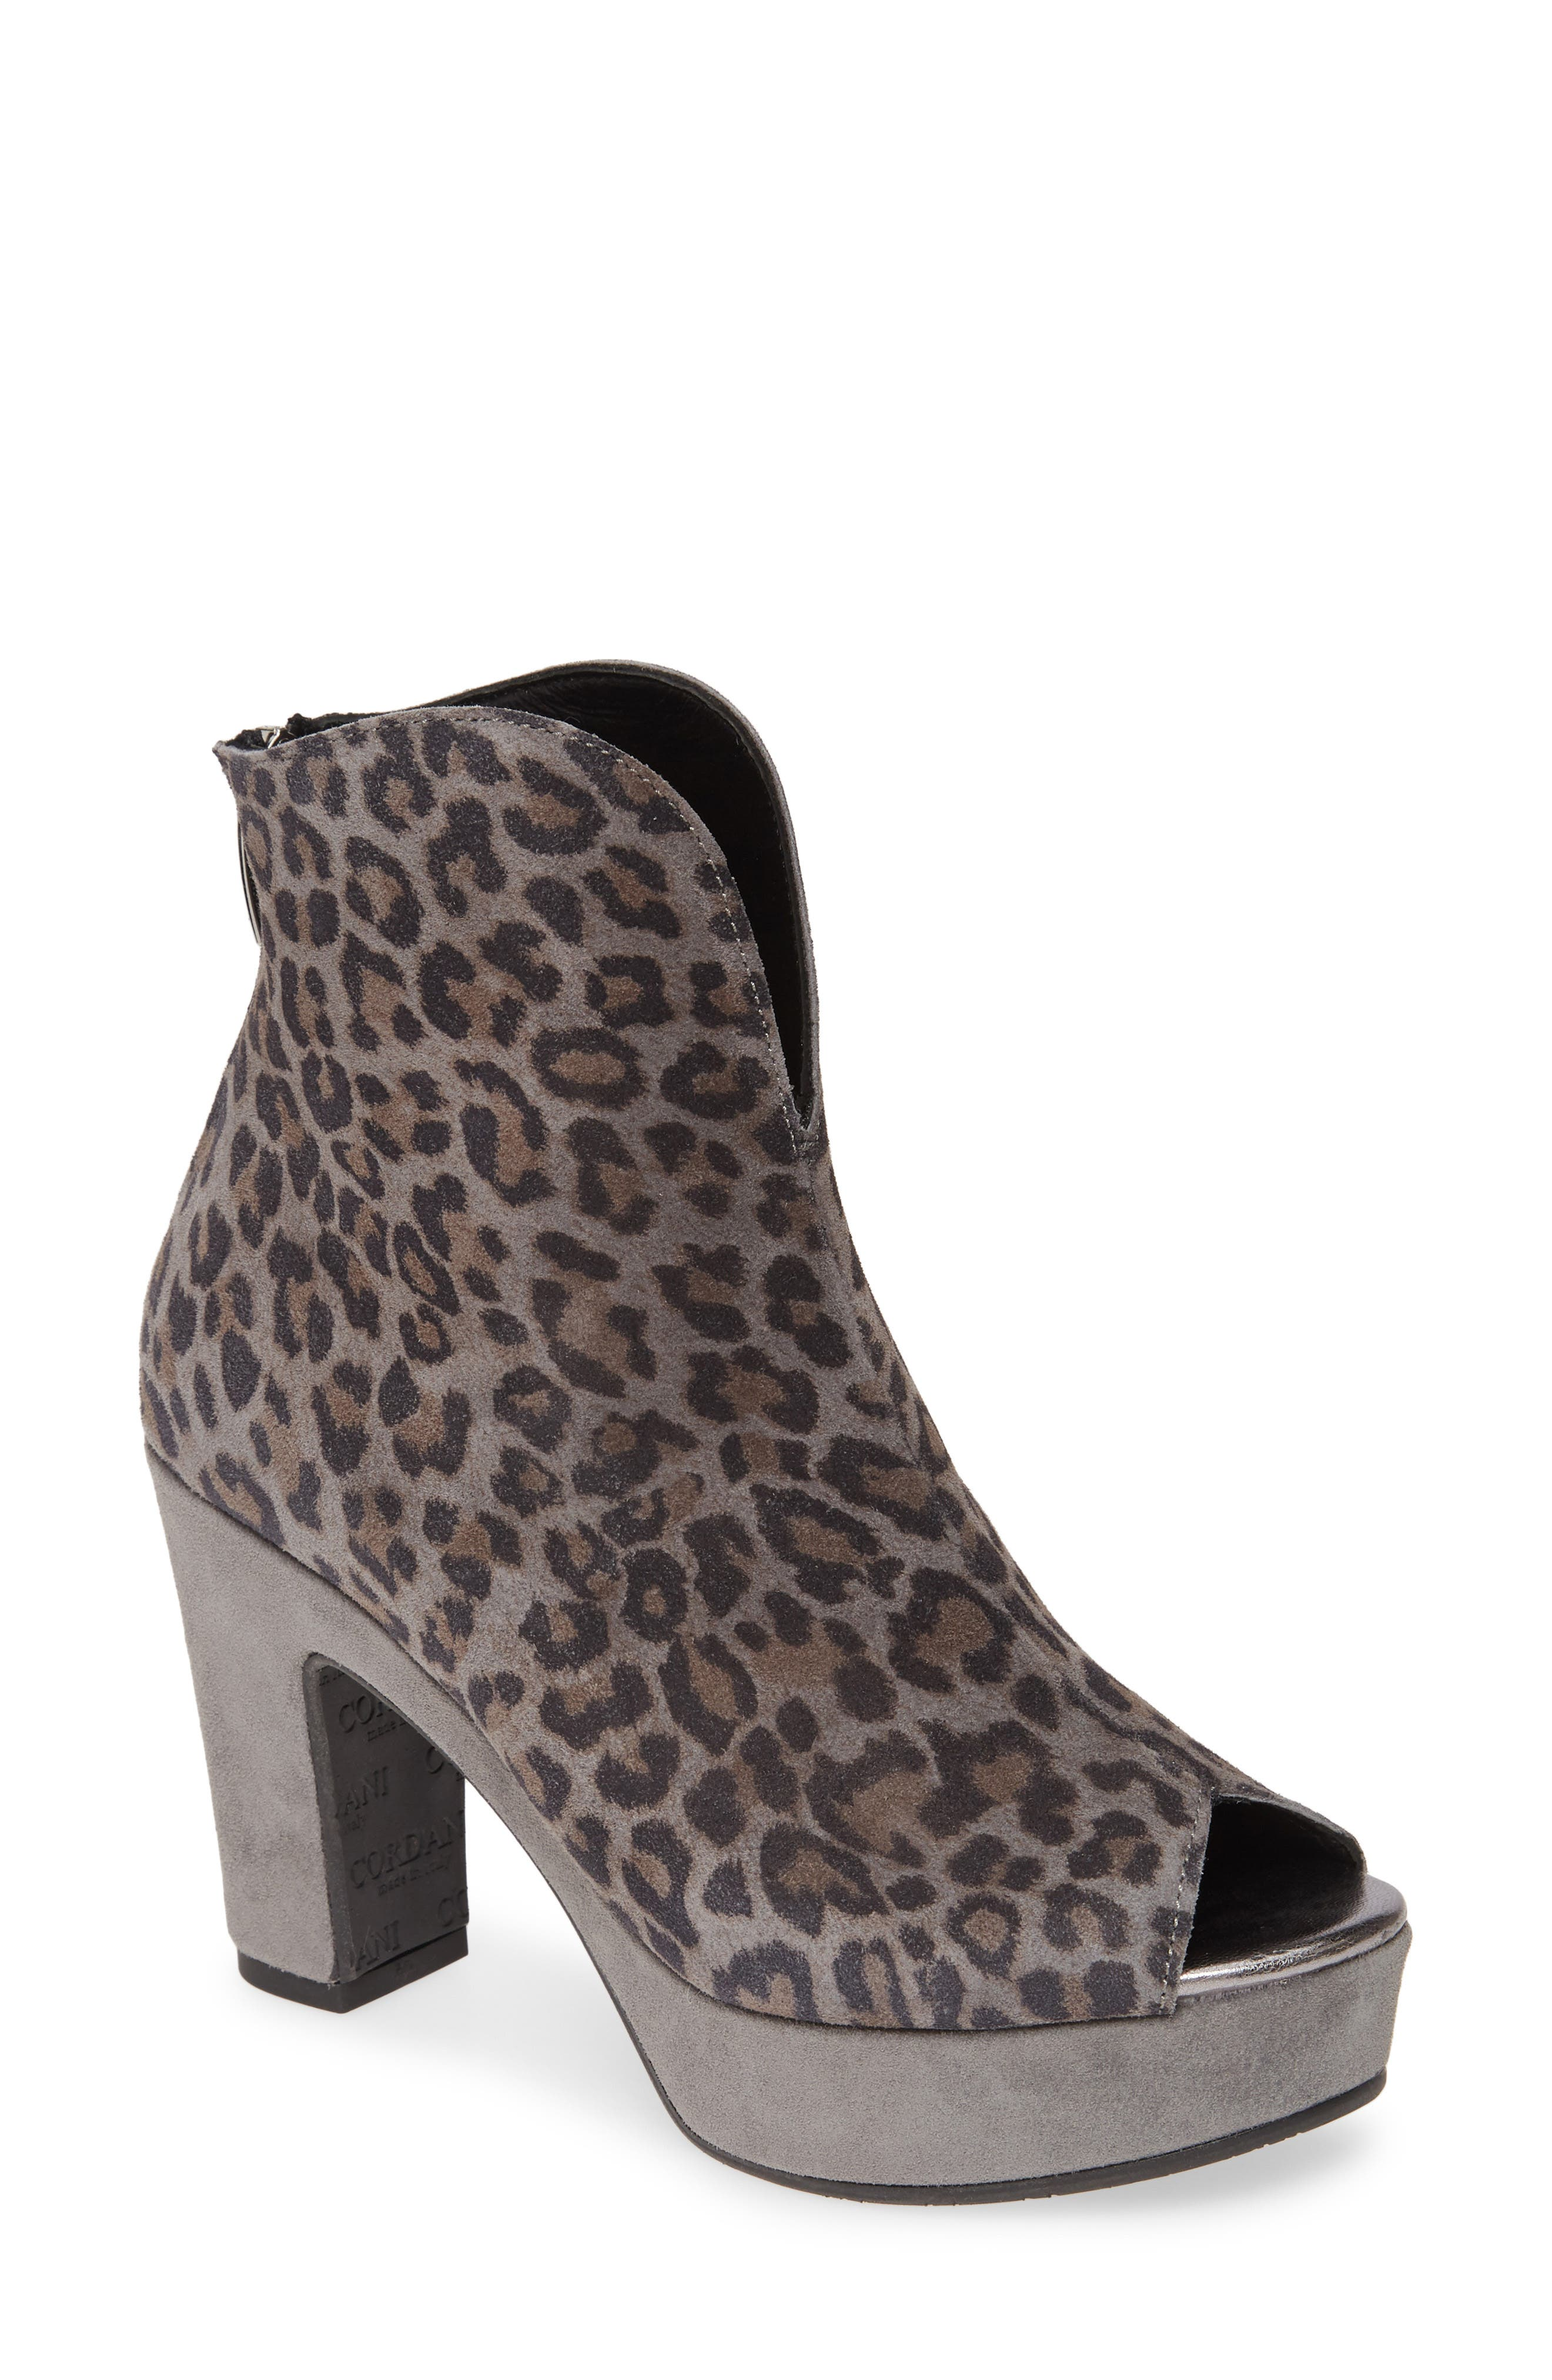 A curving topline complements the rocker bottom that gently propels each step in this stylish peep-toe bootie with a covered heel and platform. Style Name: Cordani Tabbi Peep Toe Bootie (Women). Style Number: 5869221 1. Available in stores.